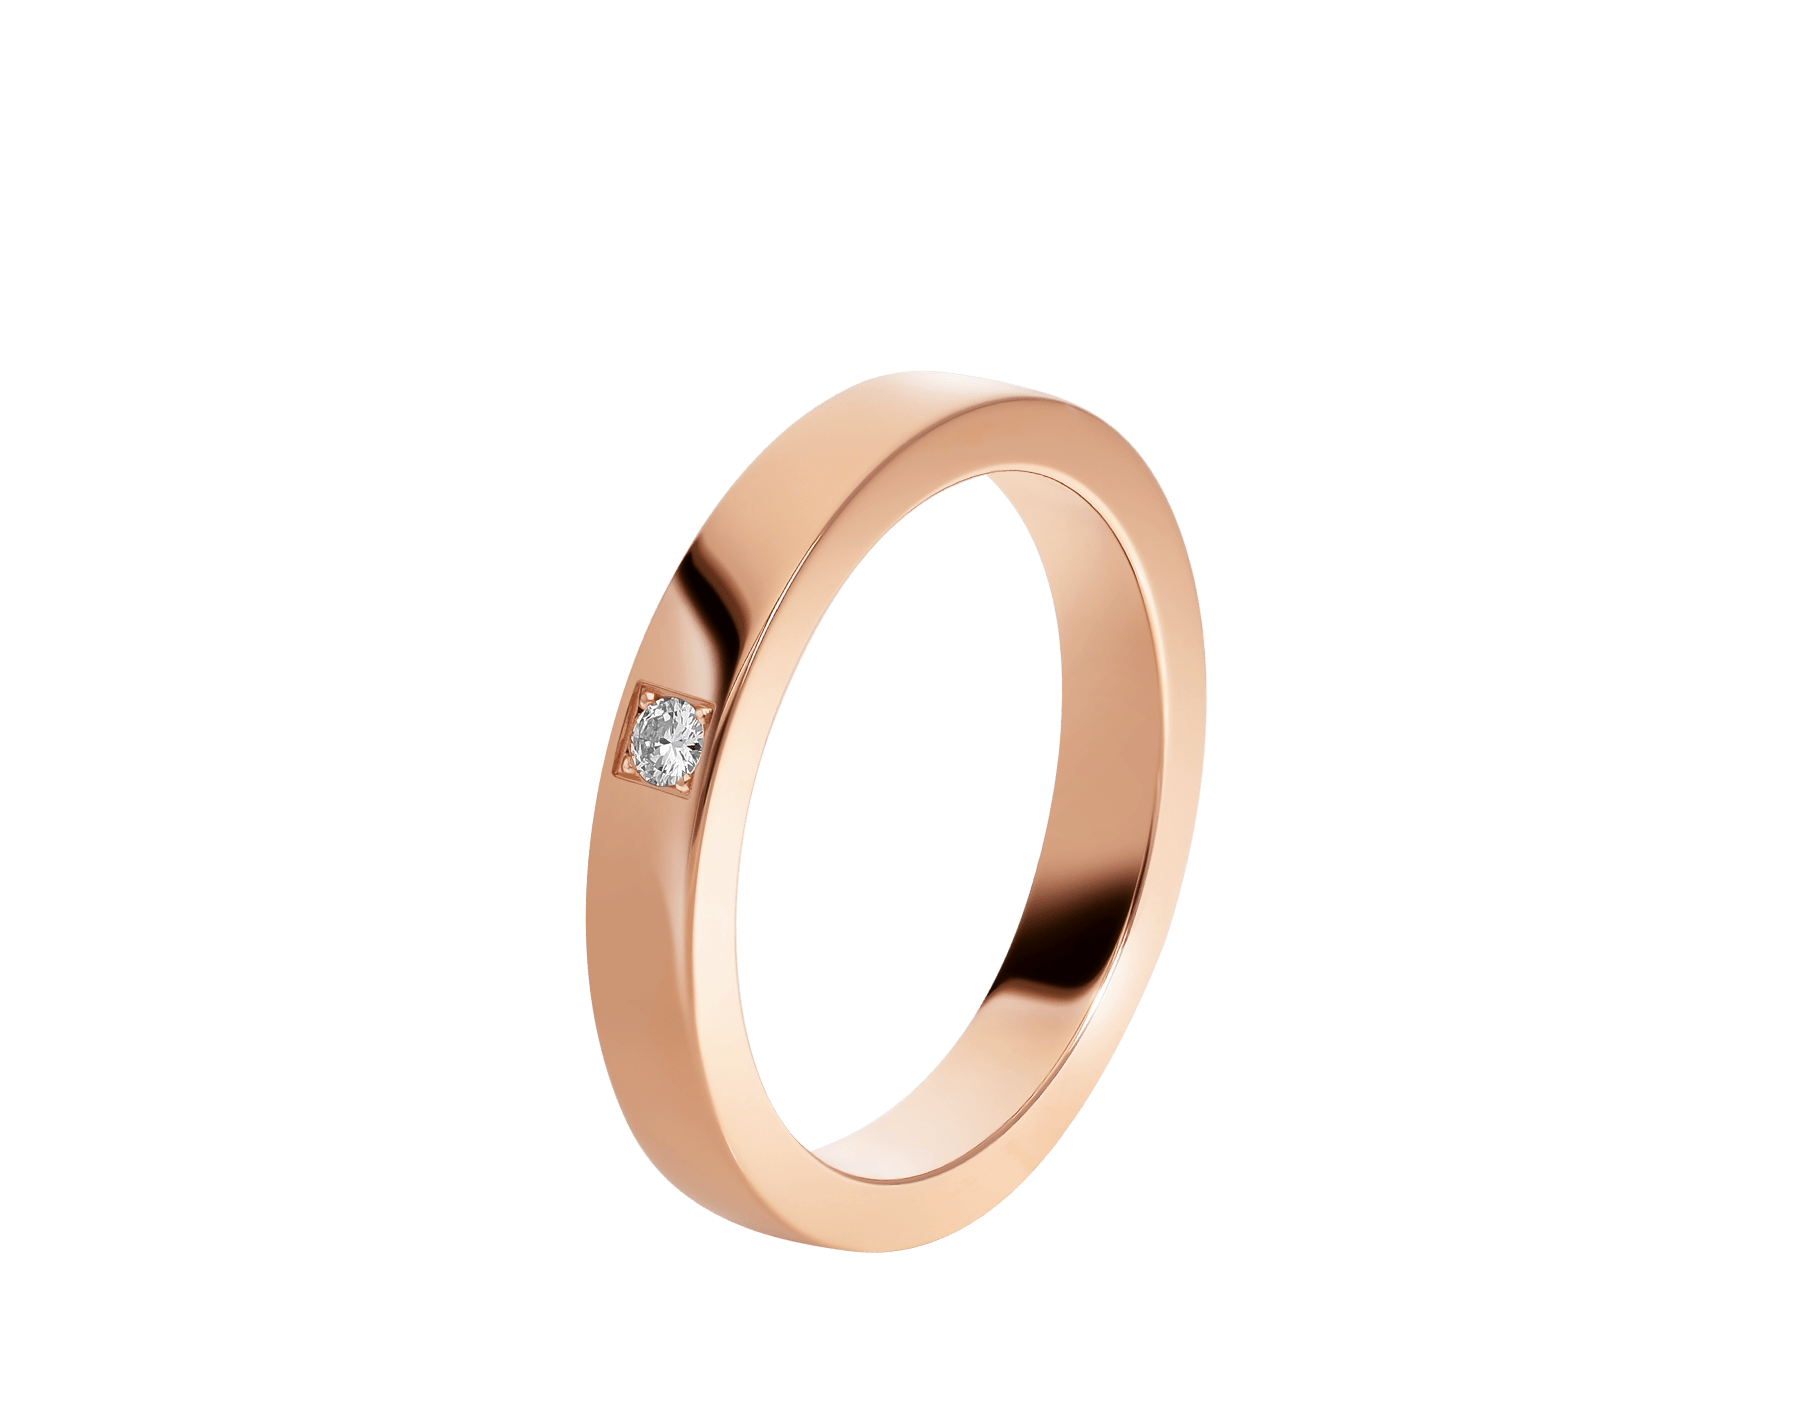 MarryMe 18 kt rose gold wedding band set with a diamond. AN858411 image 1